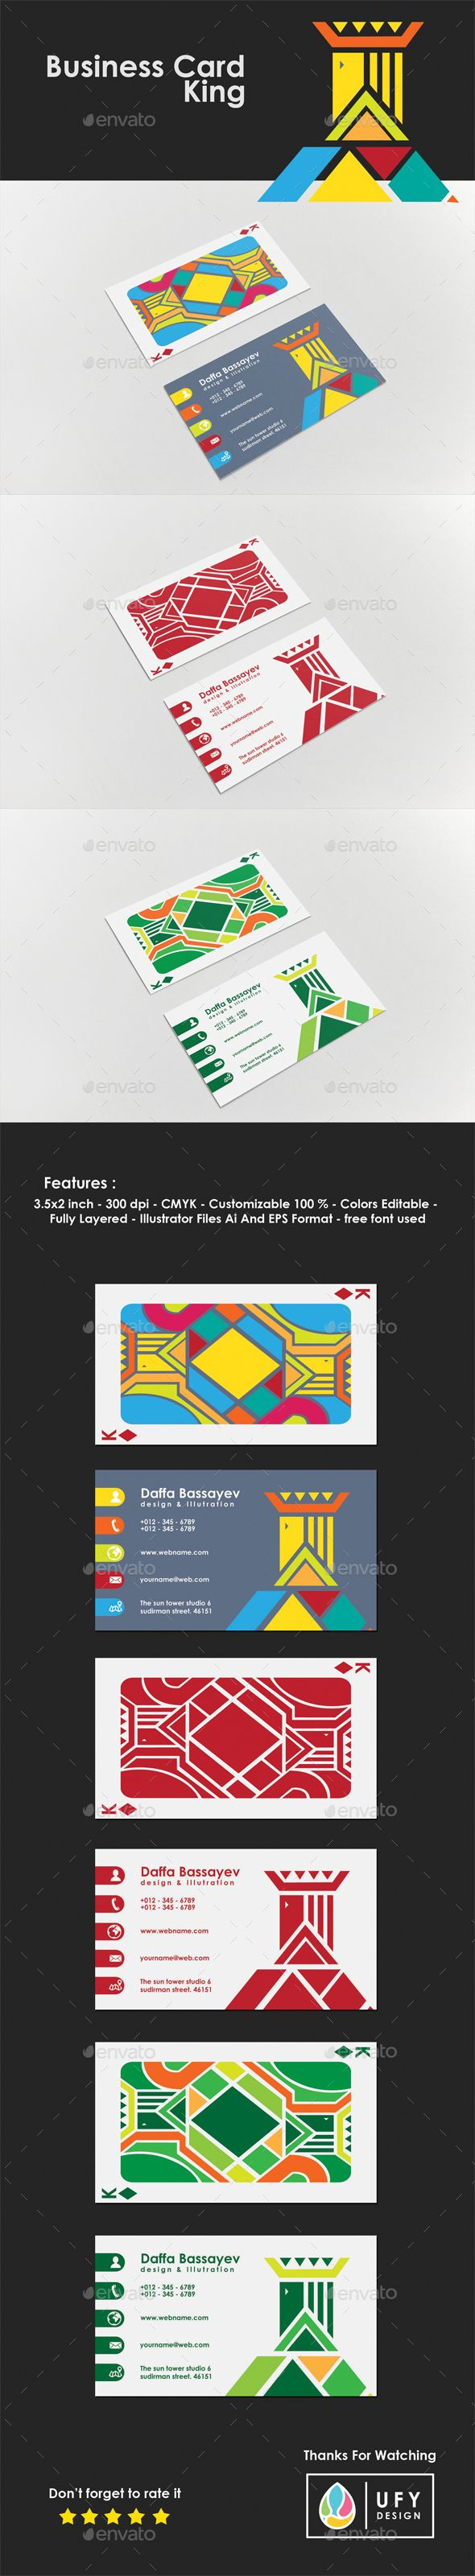 Business card king business cards print templates and card printing business card king colourmoves